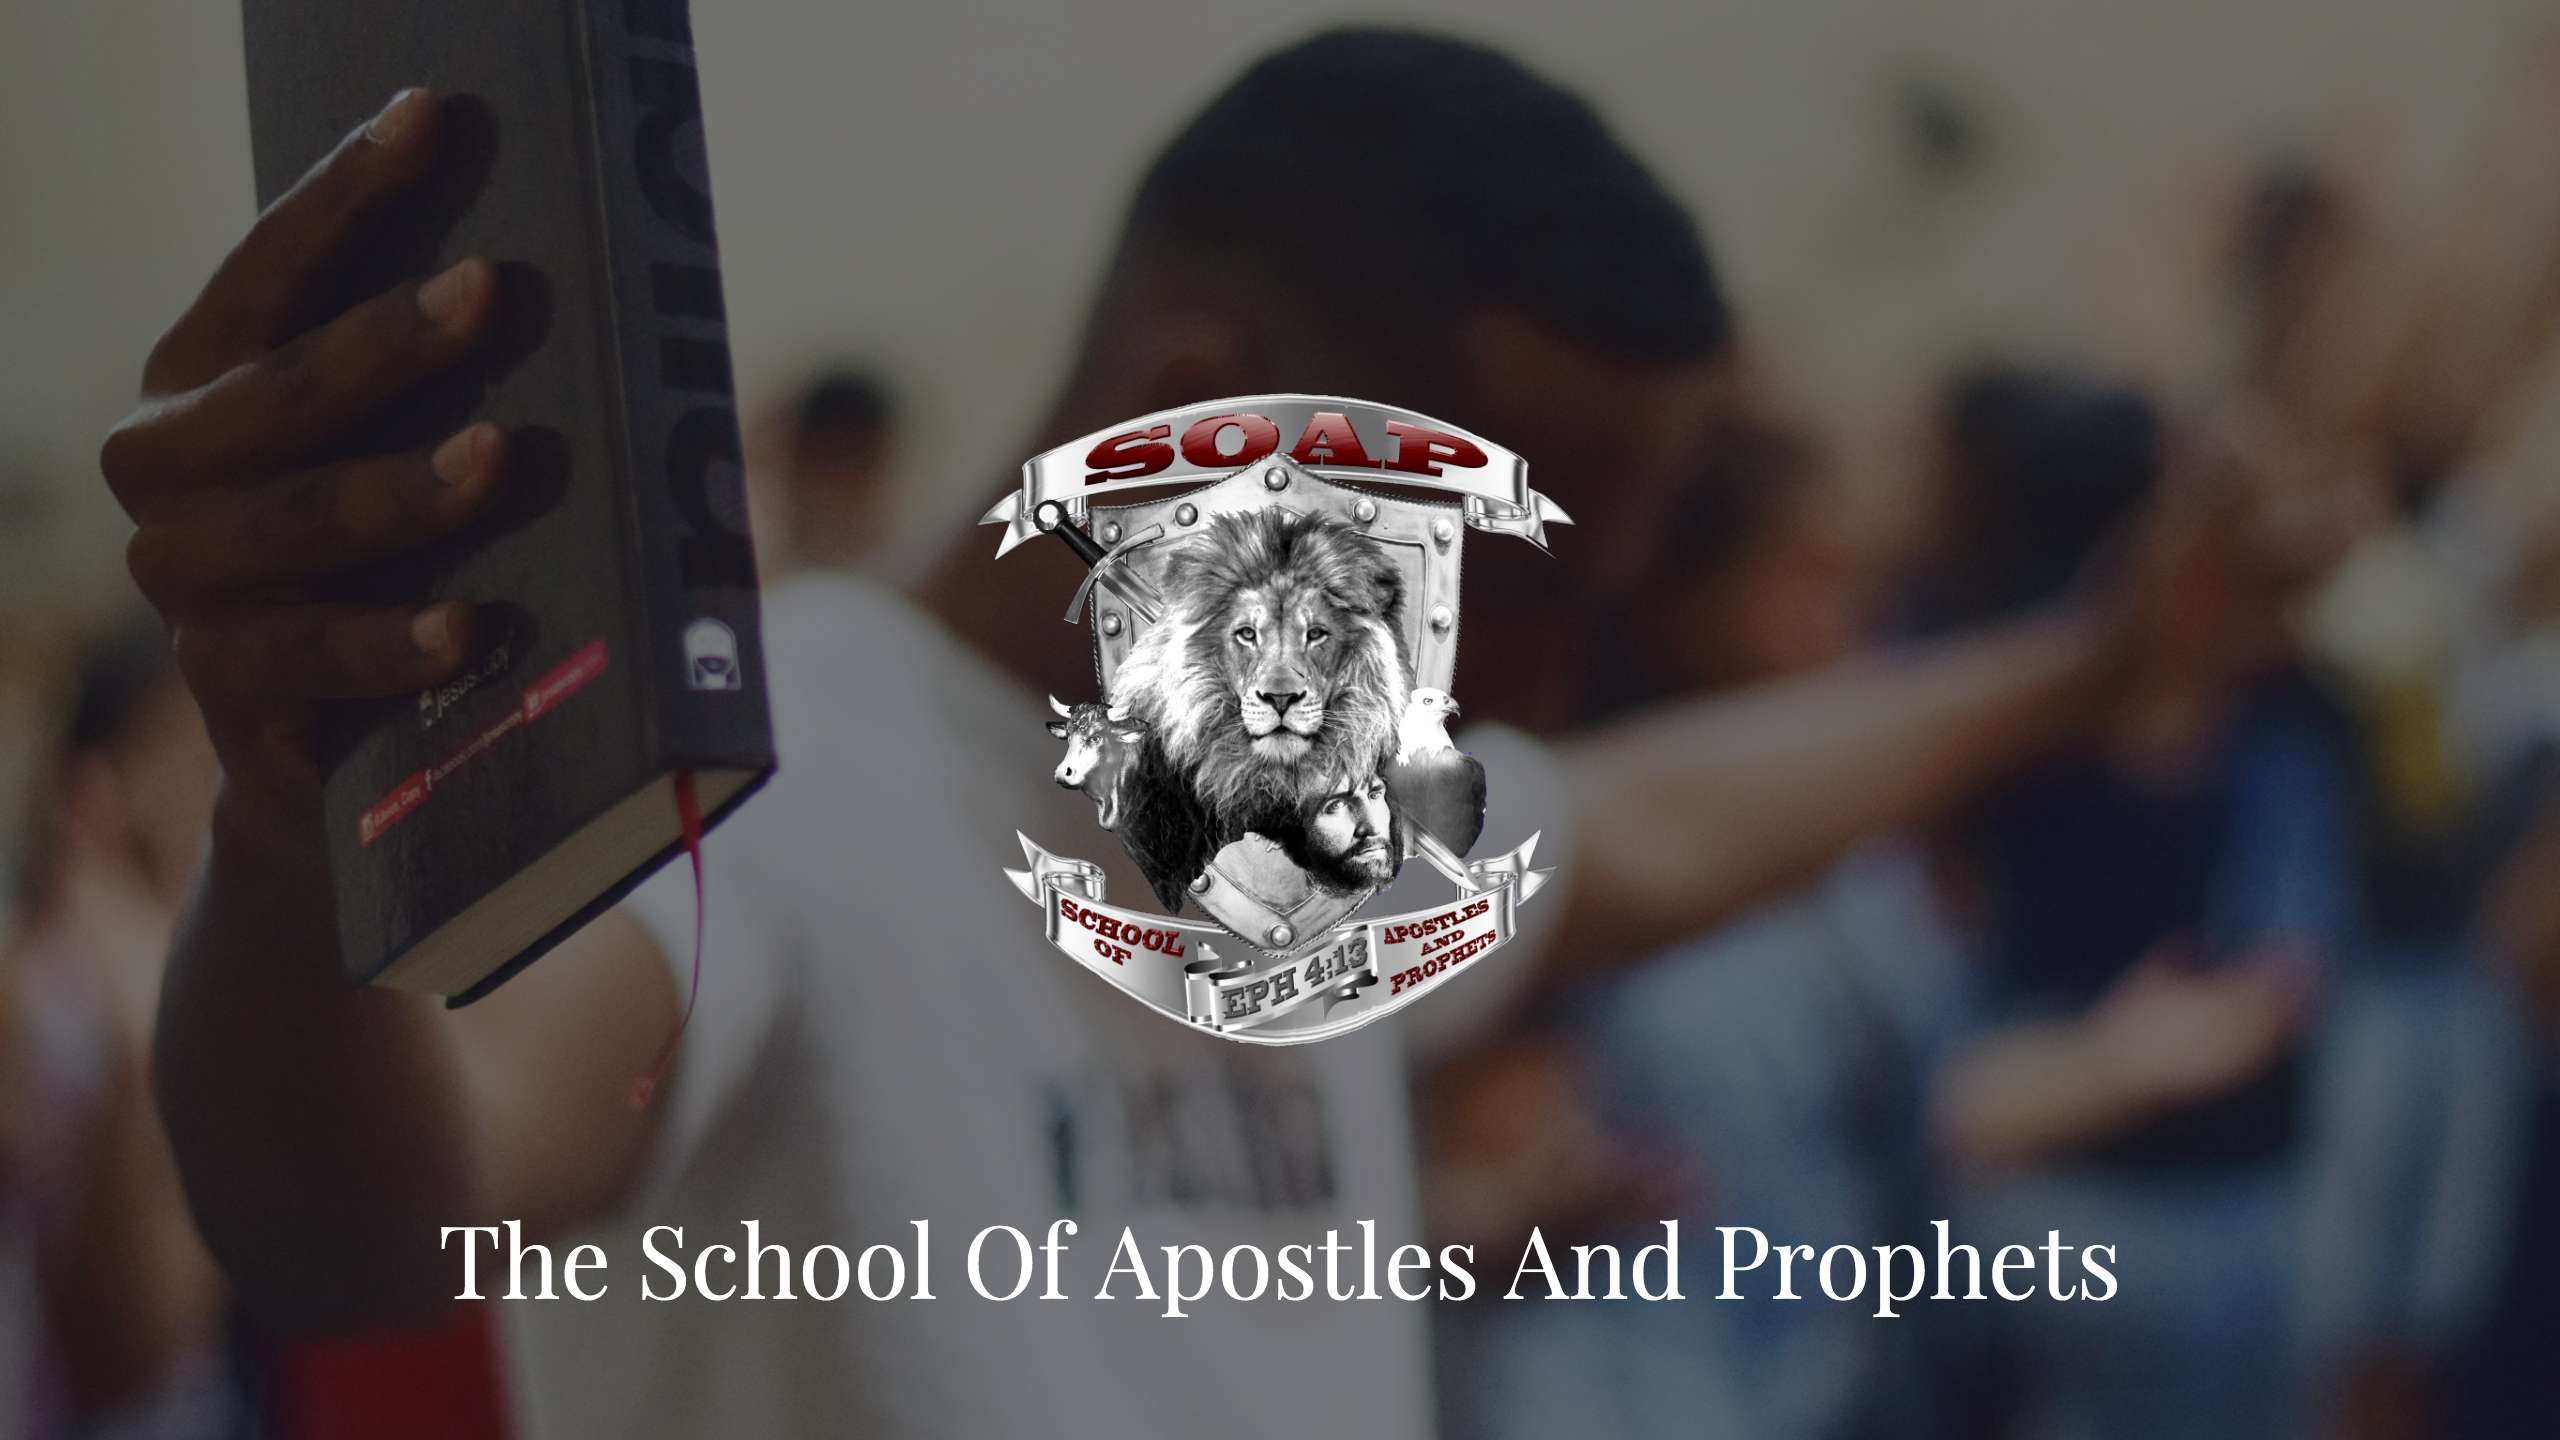 School Of Apostles And Prophets